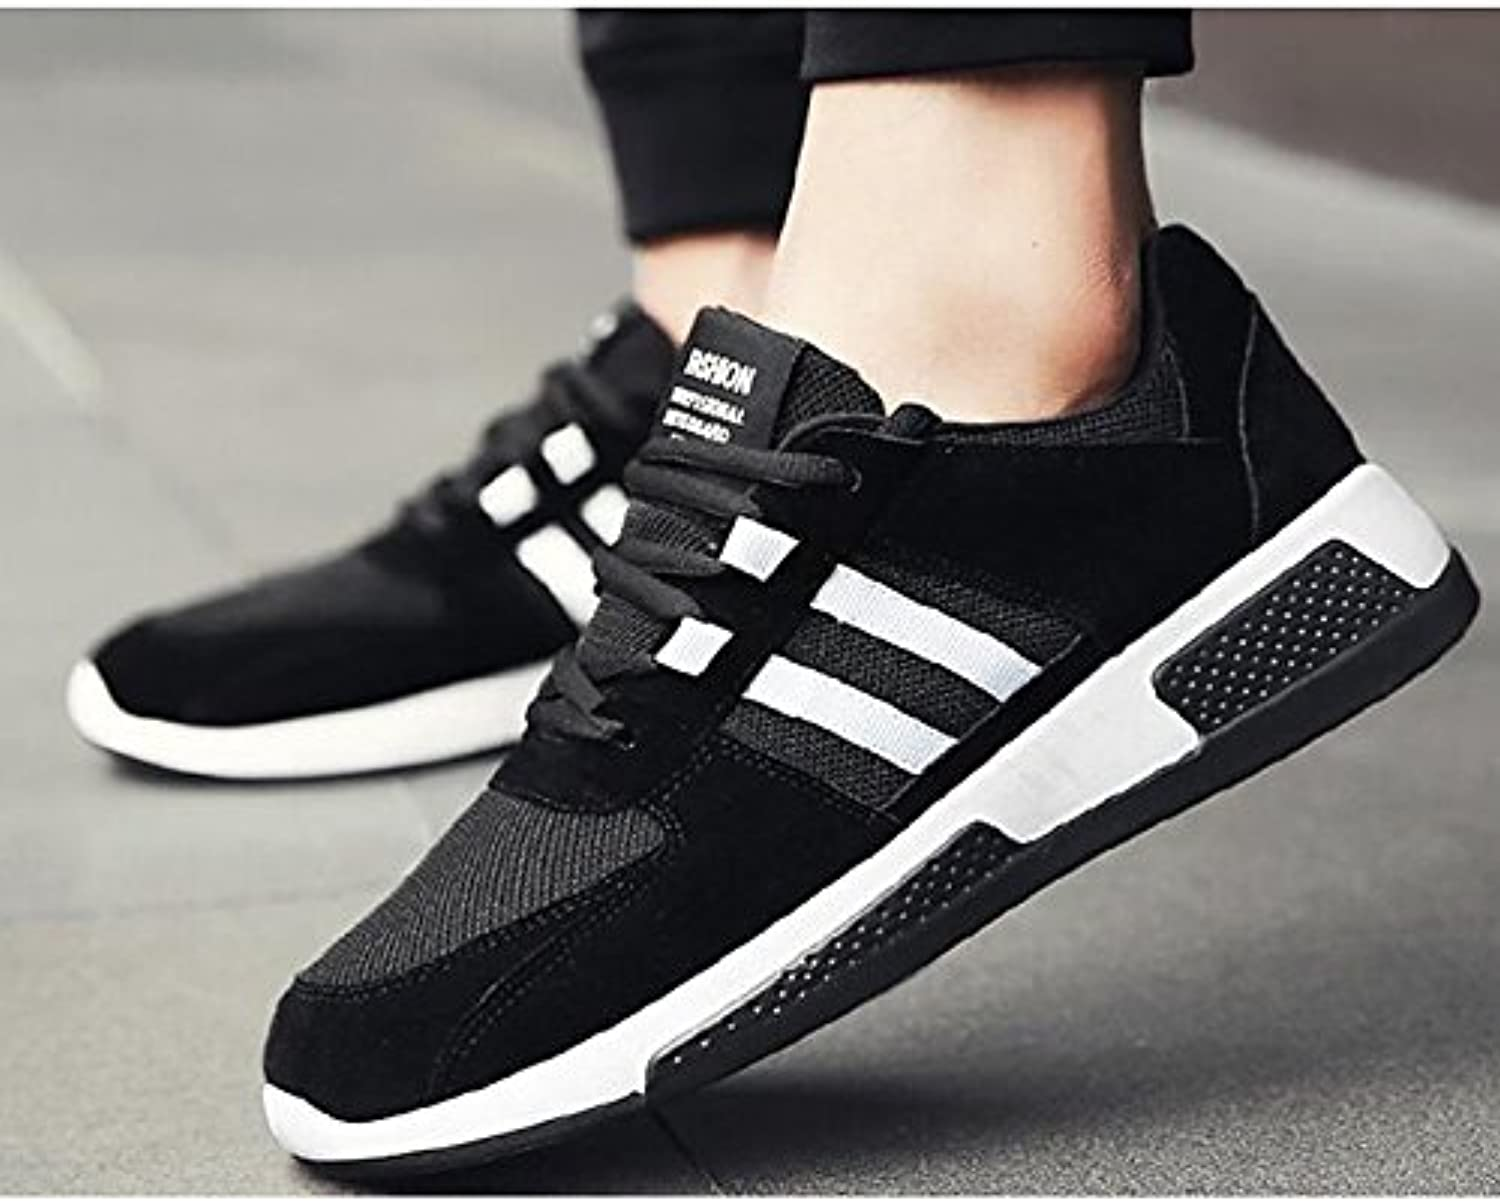 87a3f1c15fe75 DIMAOLV Men's shoes PU Spring Fall Comfort Sneakers for Casual ...